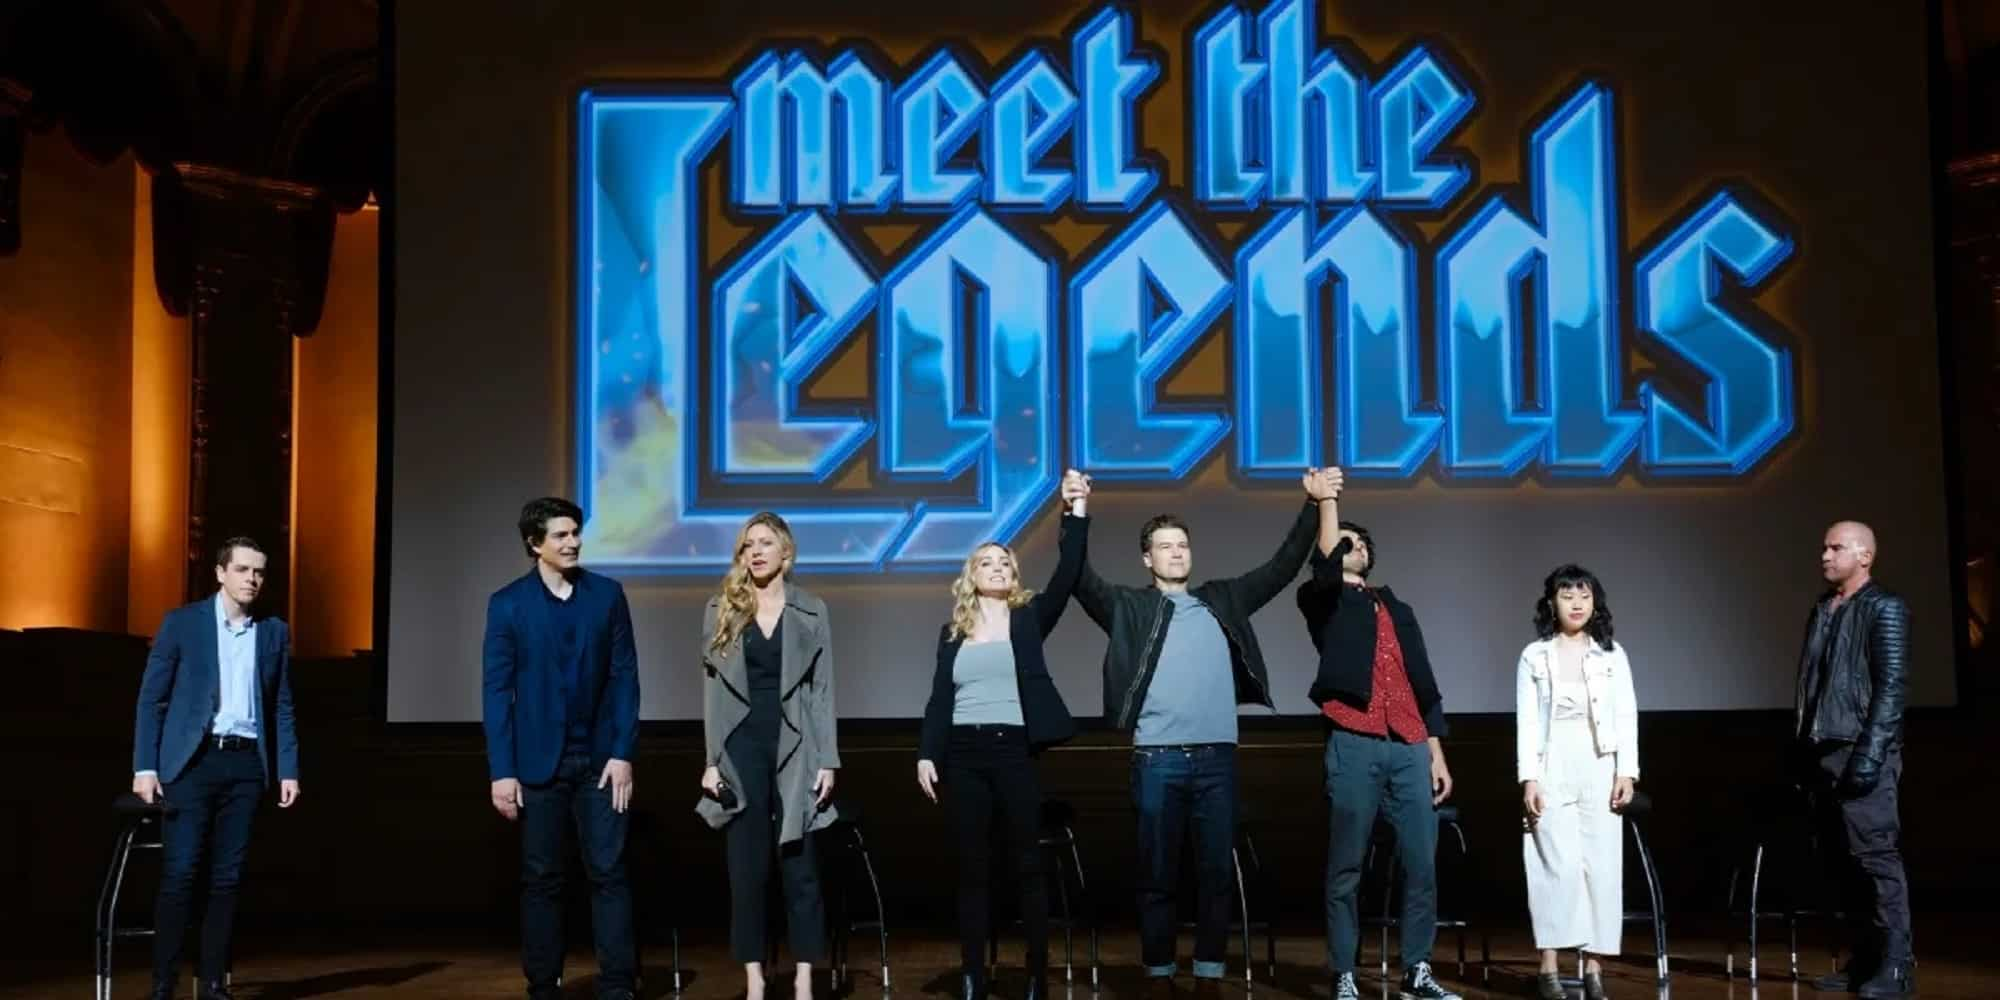 Season 5 premiere legends of tomorrow Meet the Legends